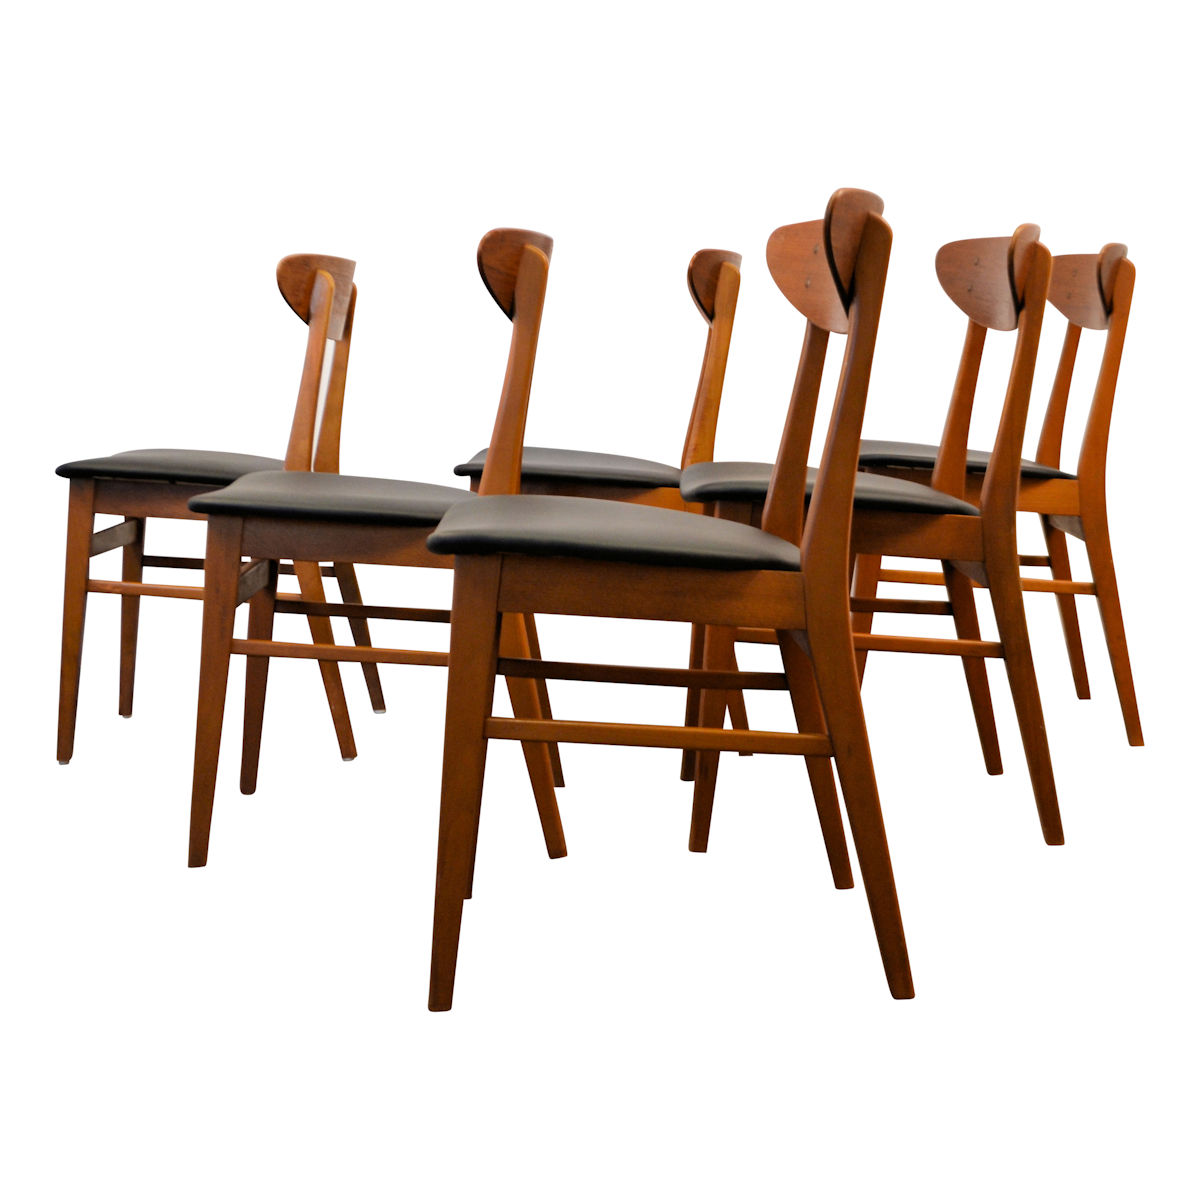 Terrific Vintage Teak Knud Faerch Dining Chairs Vintage Vibes Squirreltailoven Fun Painted Chair Ideas Images Squirreltailovenorg